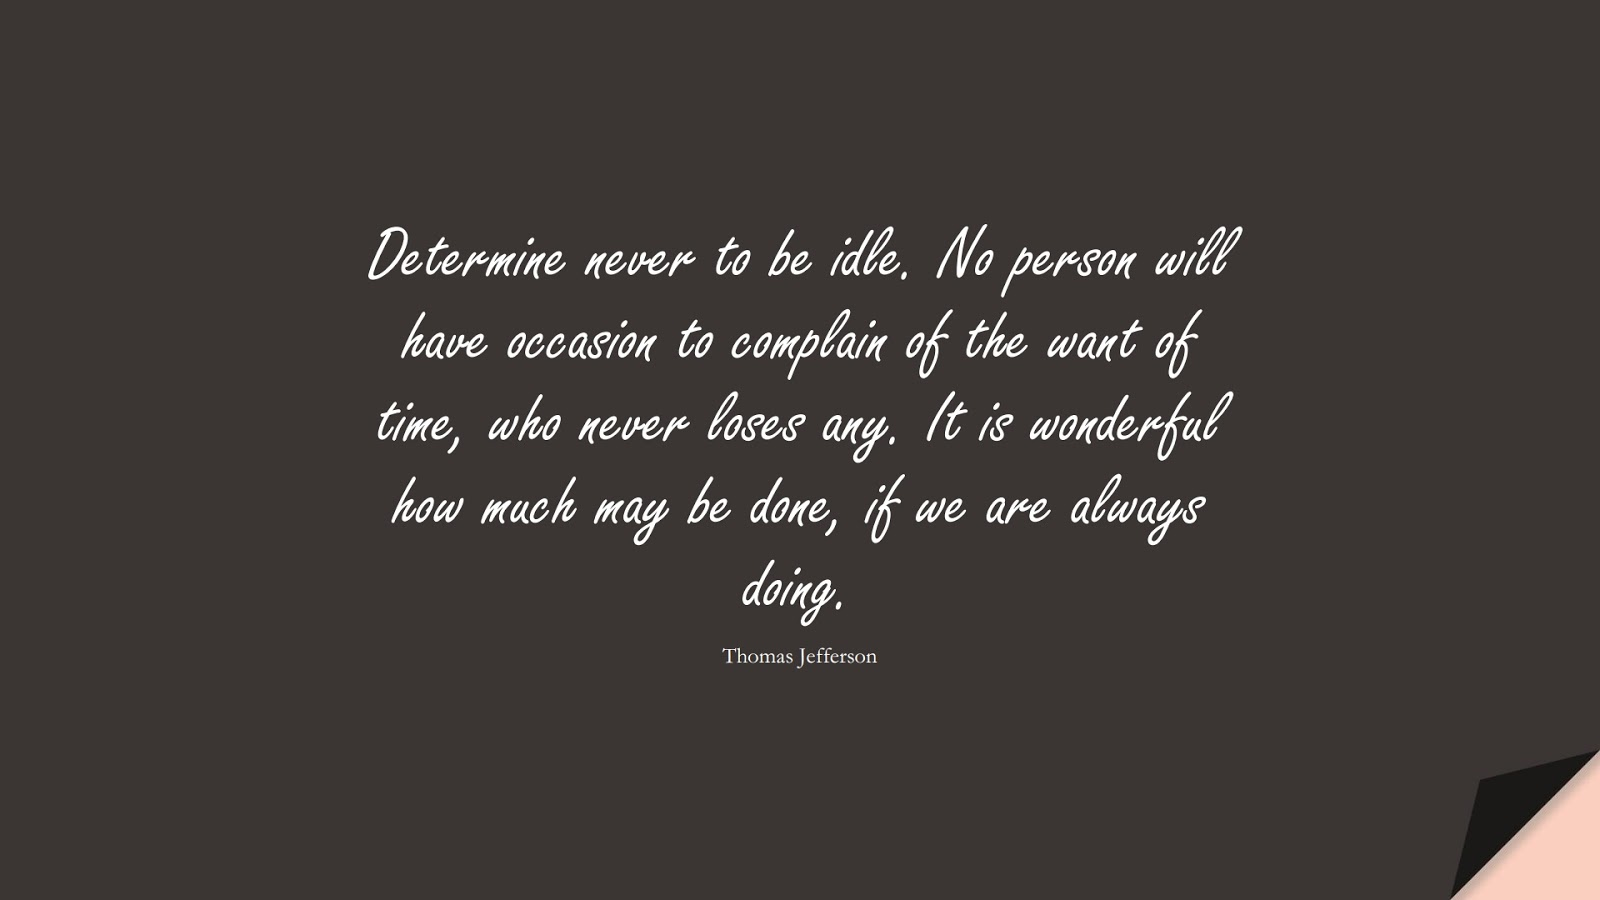 Determine never to be idle. No person will have occasion to complain of the want of time, who never loses any. It is wonderful how much may be done, if we are always doing. (Thomas Jefferson);  #HardWorkQuotes